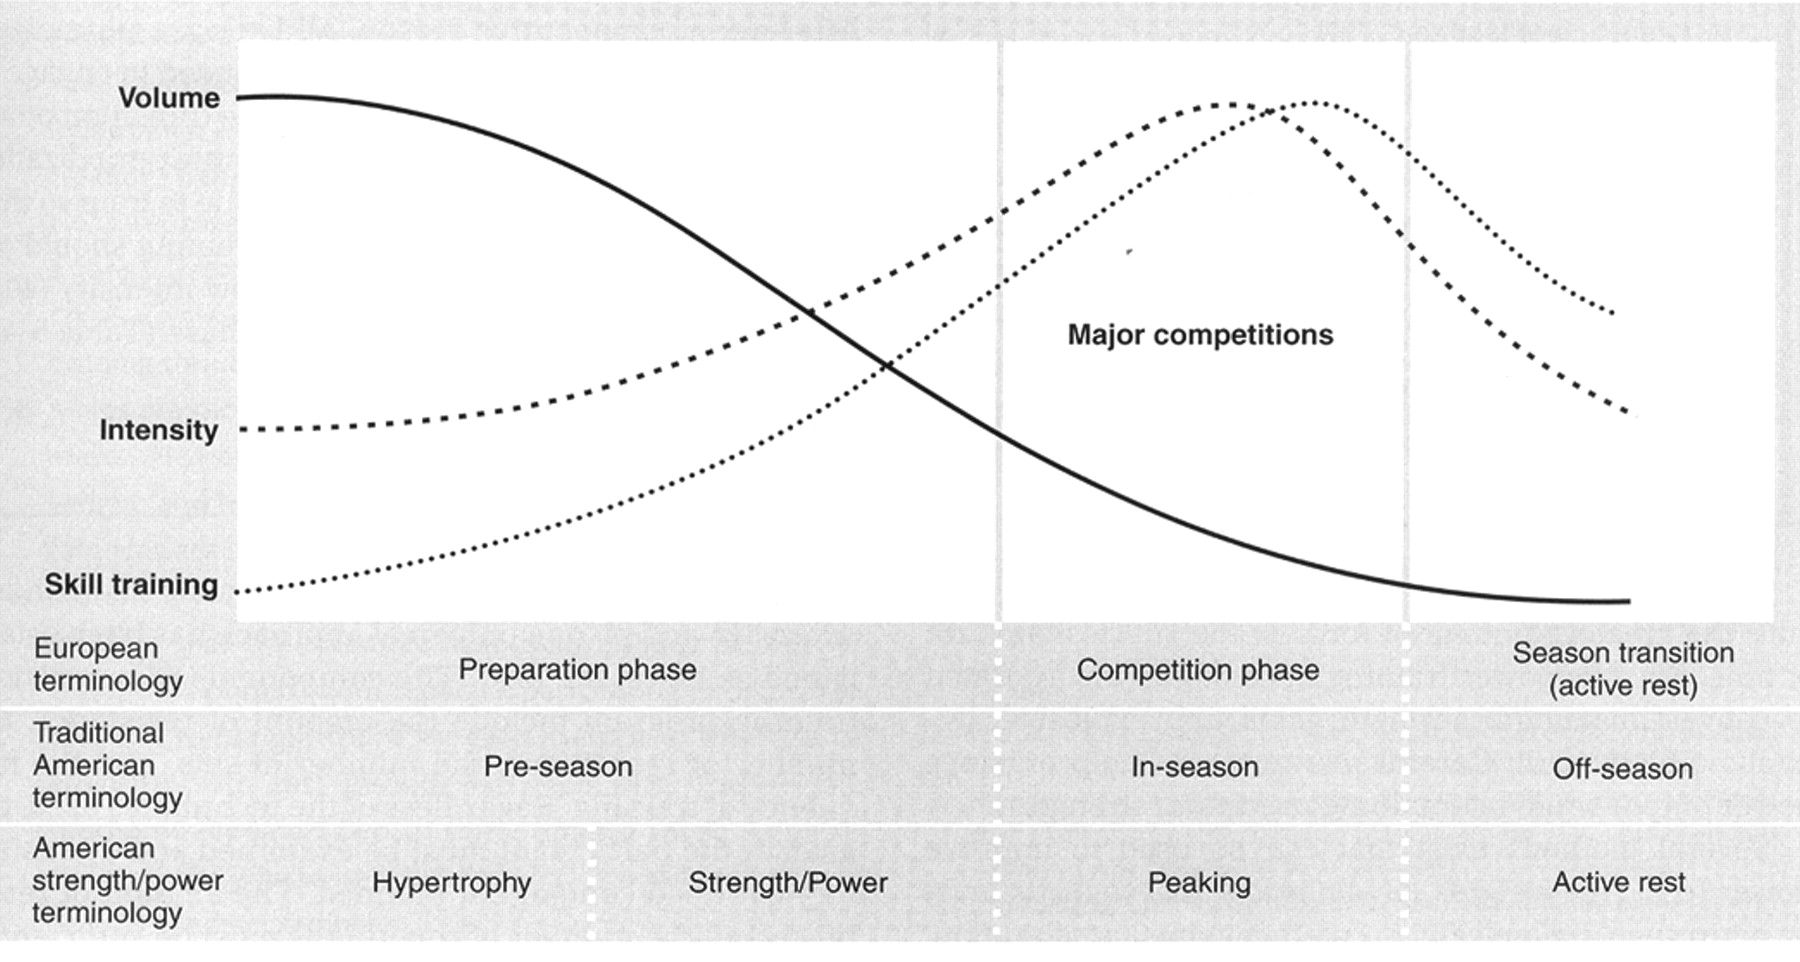 The classic periodization model decreases volume, intensity, and technical work at the same time to reach a peak.